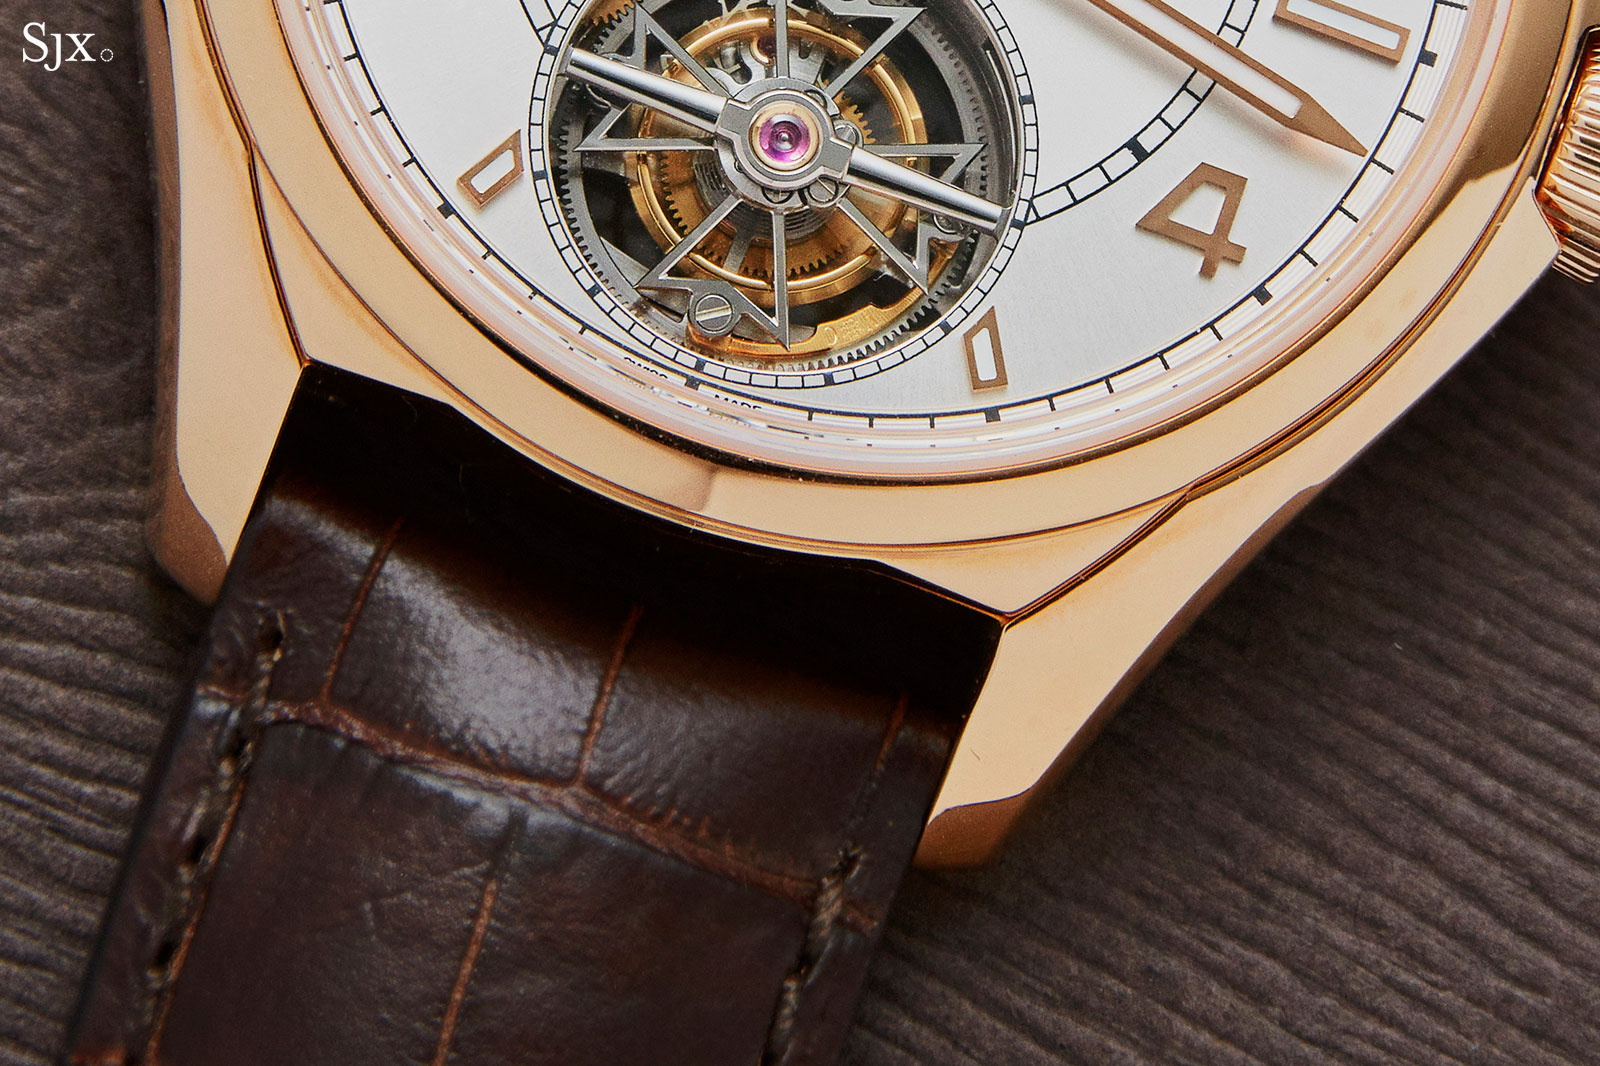 Vacheron Constantin FiftySix Tourbillon 1